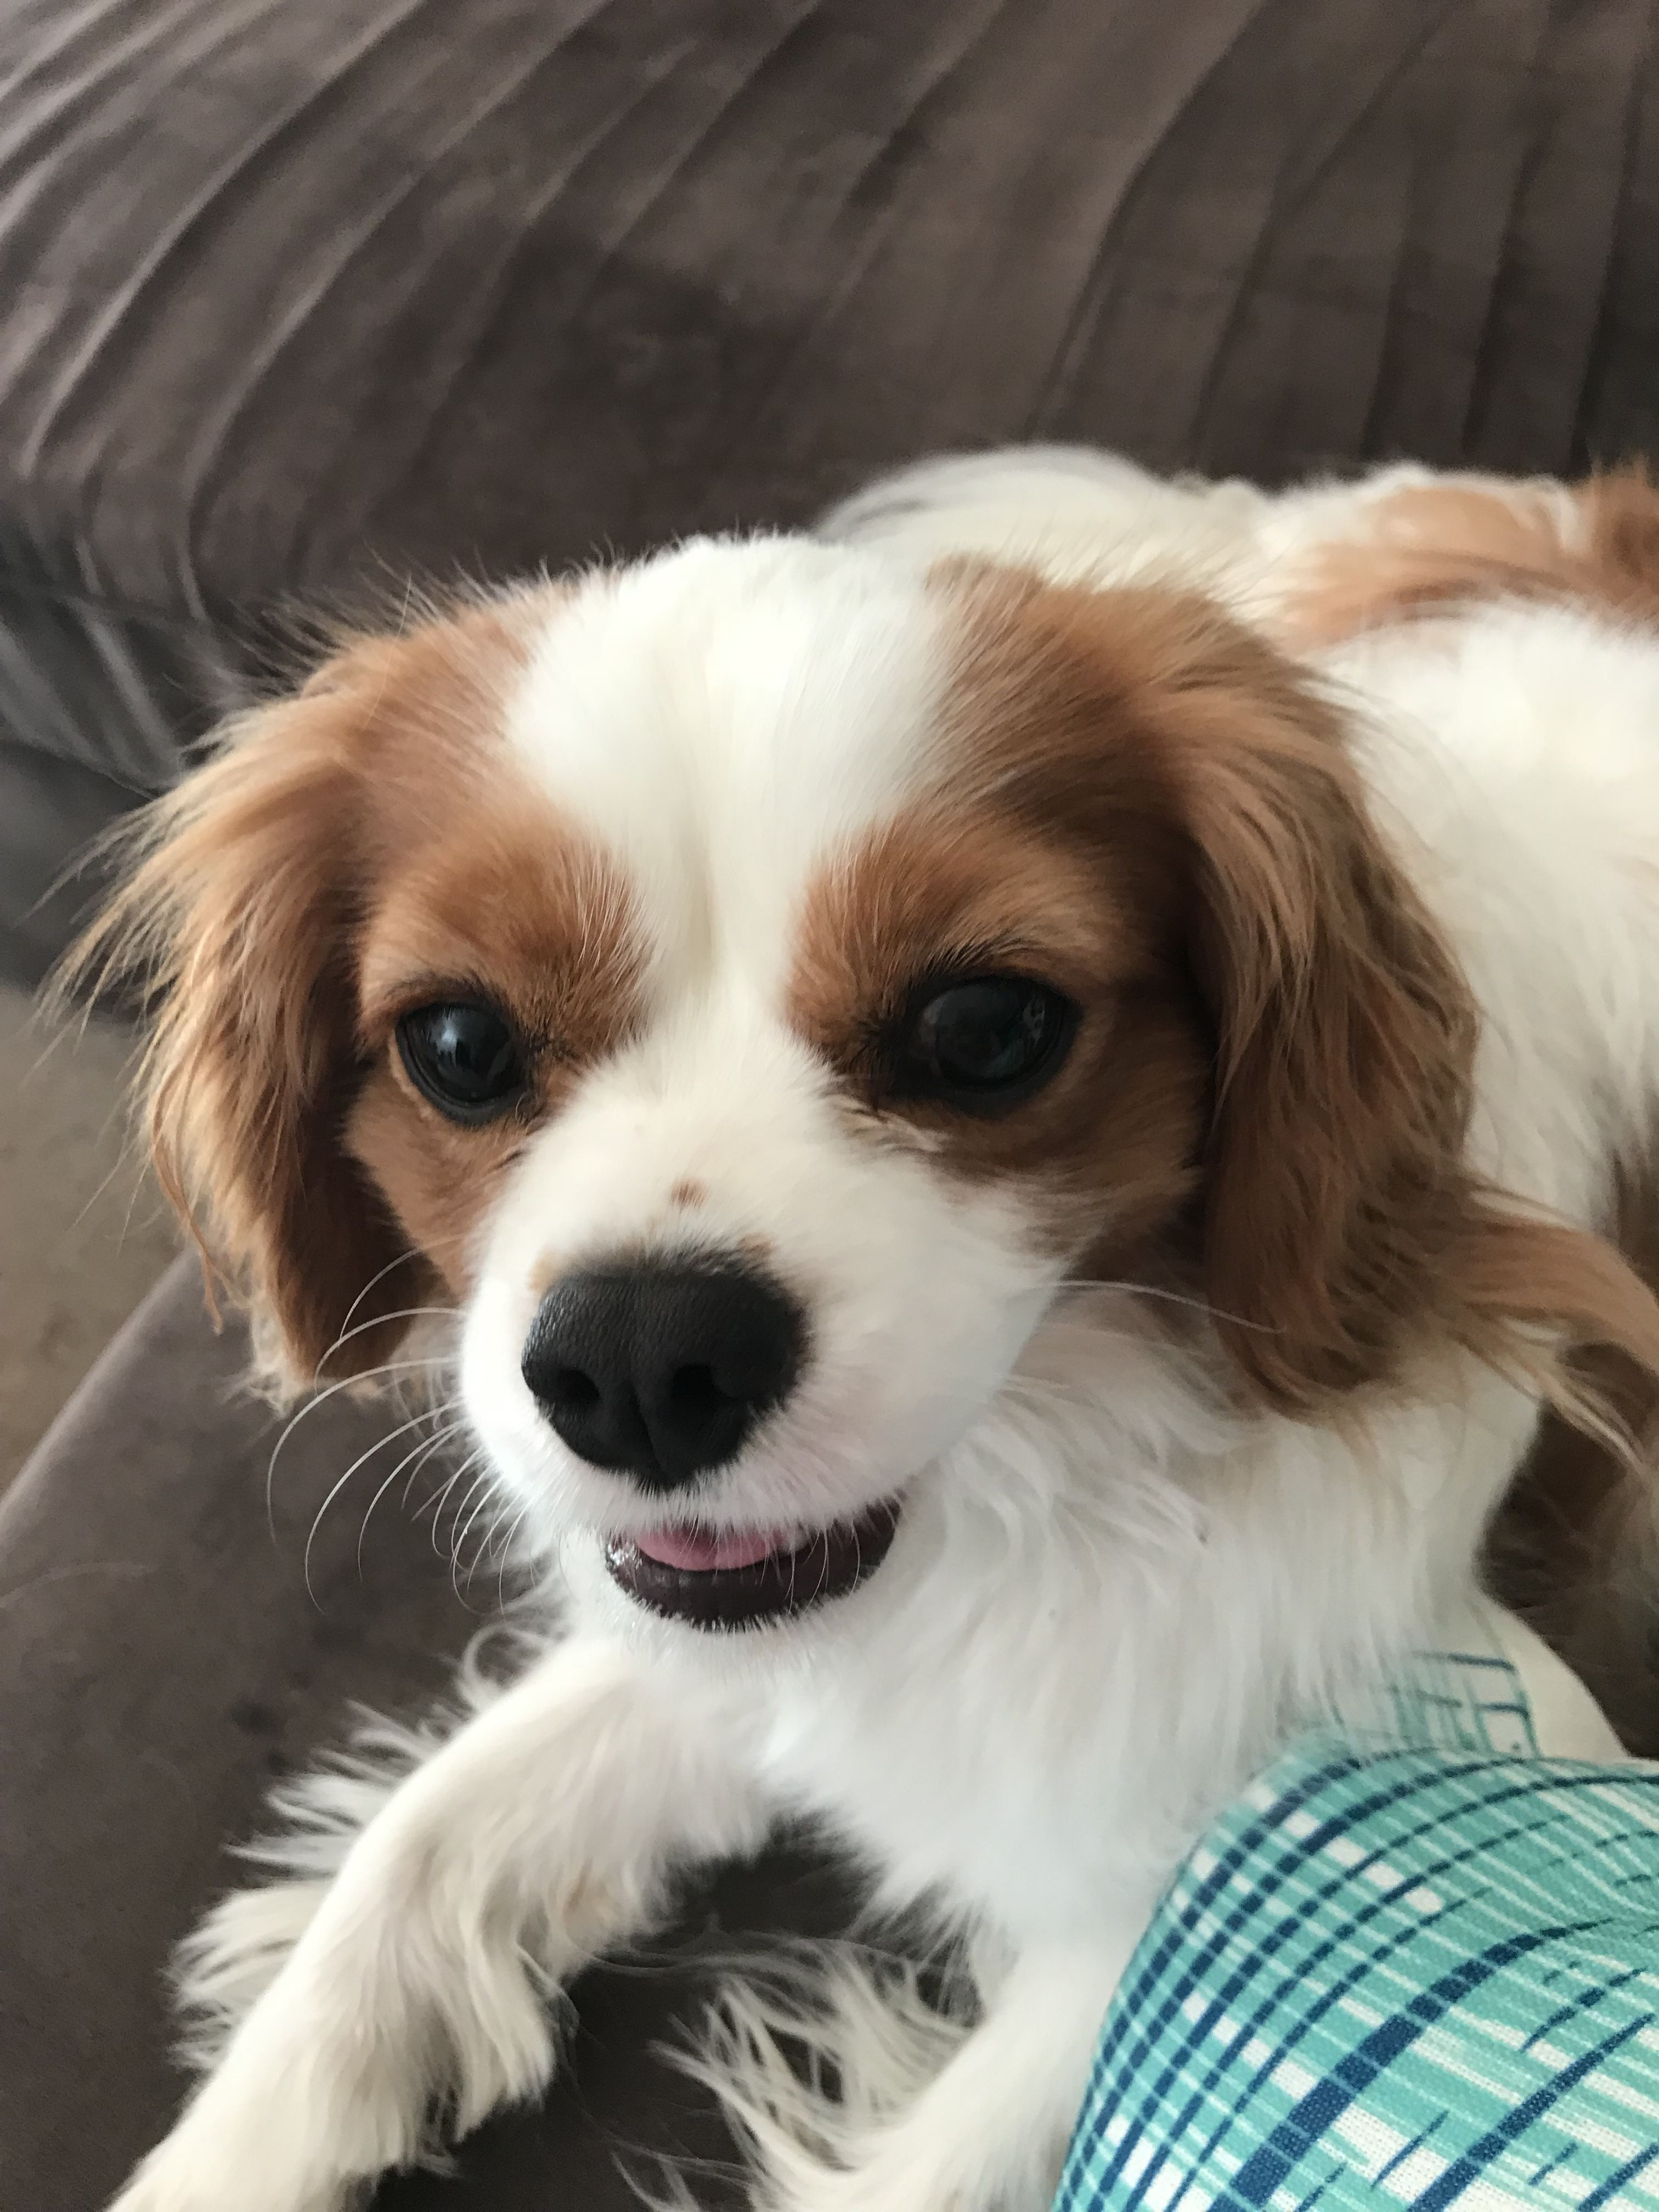 Why Did You Stop The Chin Scratching Ninathewonderpuppy King Charles Spaniel Cavalier King Charles Spaniel King Charles